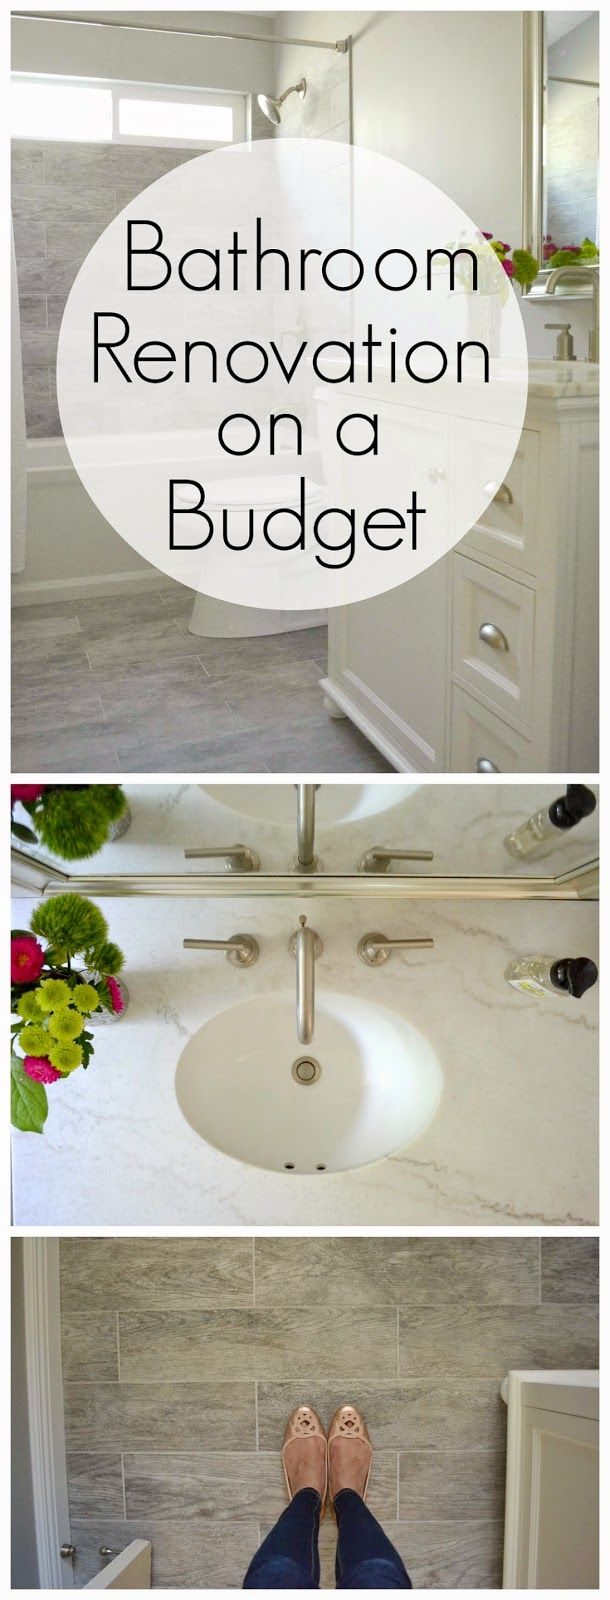 A total transformation on a budget! This bathroom renovation went from 80's drab to fab. Koehler Archer soaking tub